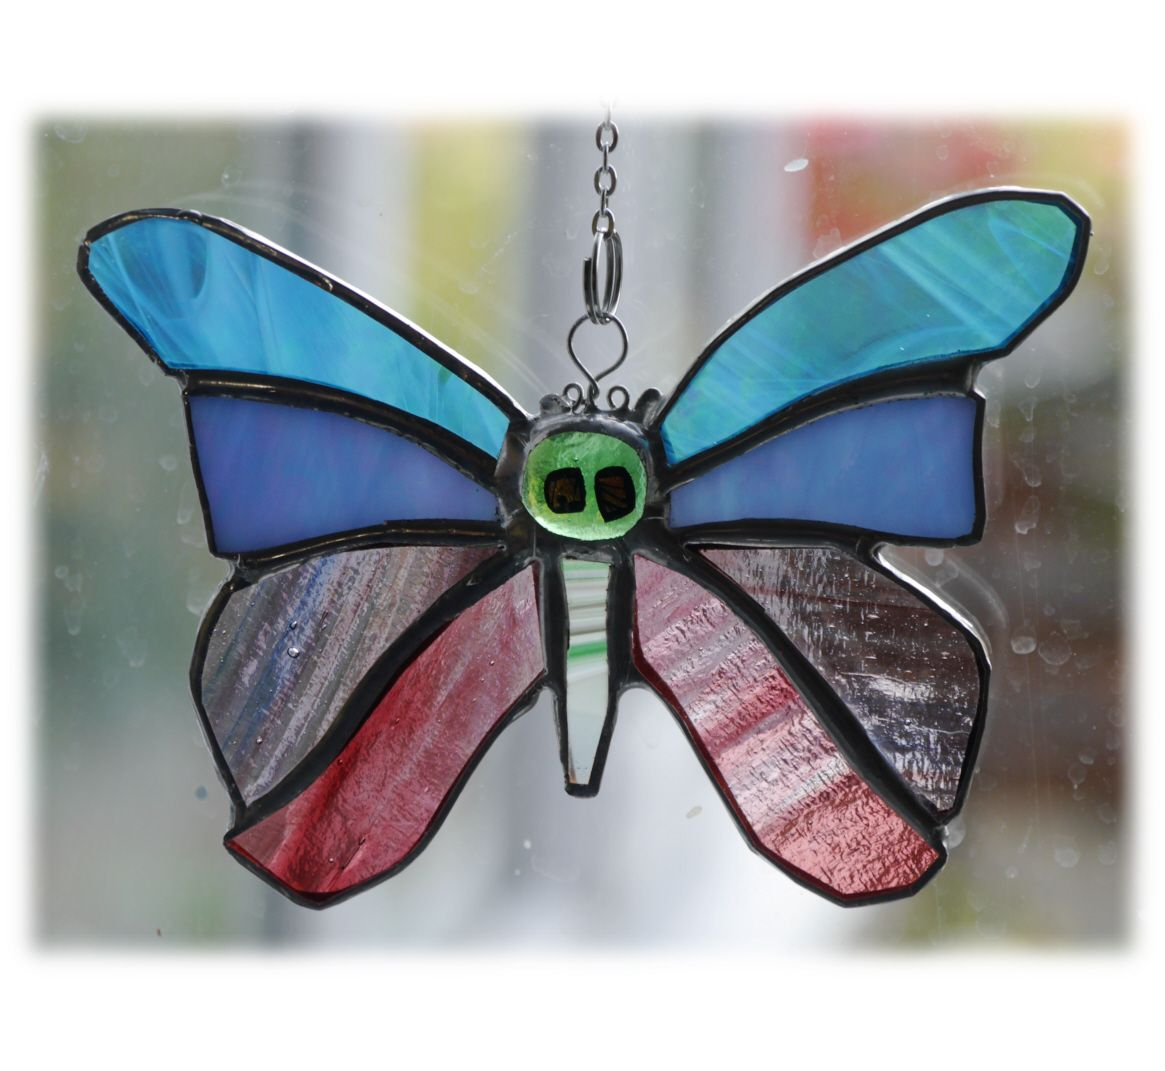 Birthstone Butterfly 049 Pastel #1808 FREE 13.00